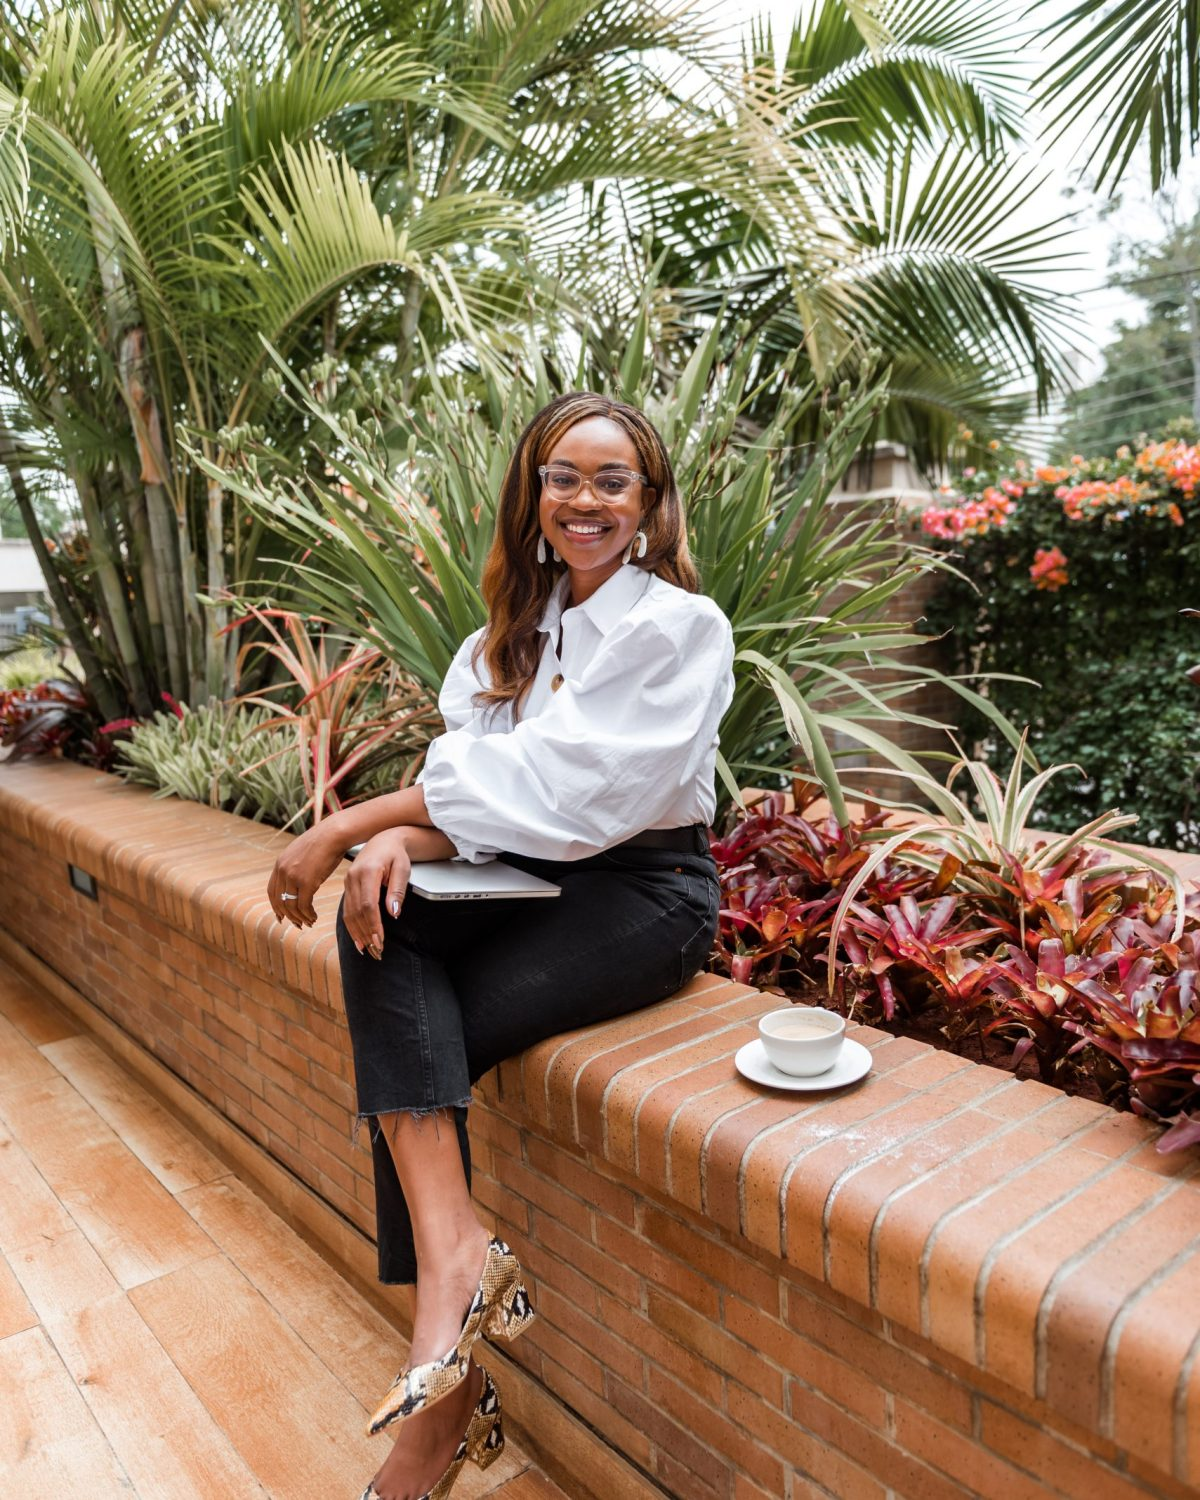 Ijeoma Kola sitting outdoors and smiling with laptop closed on lap and cup of tea next to her